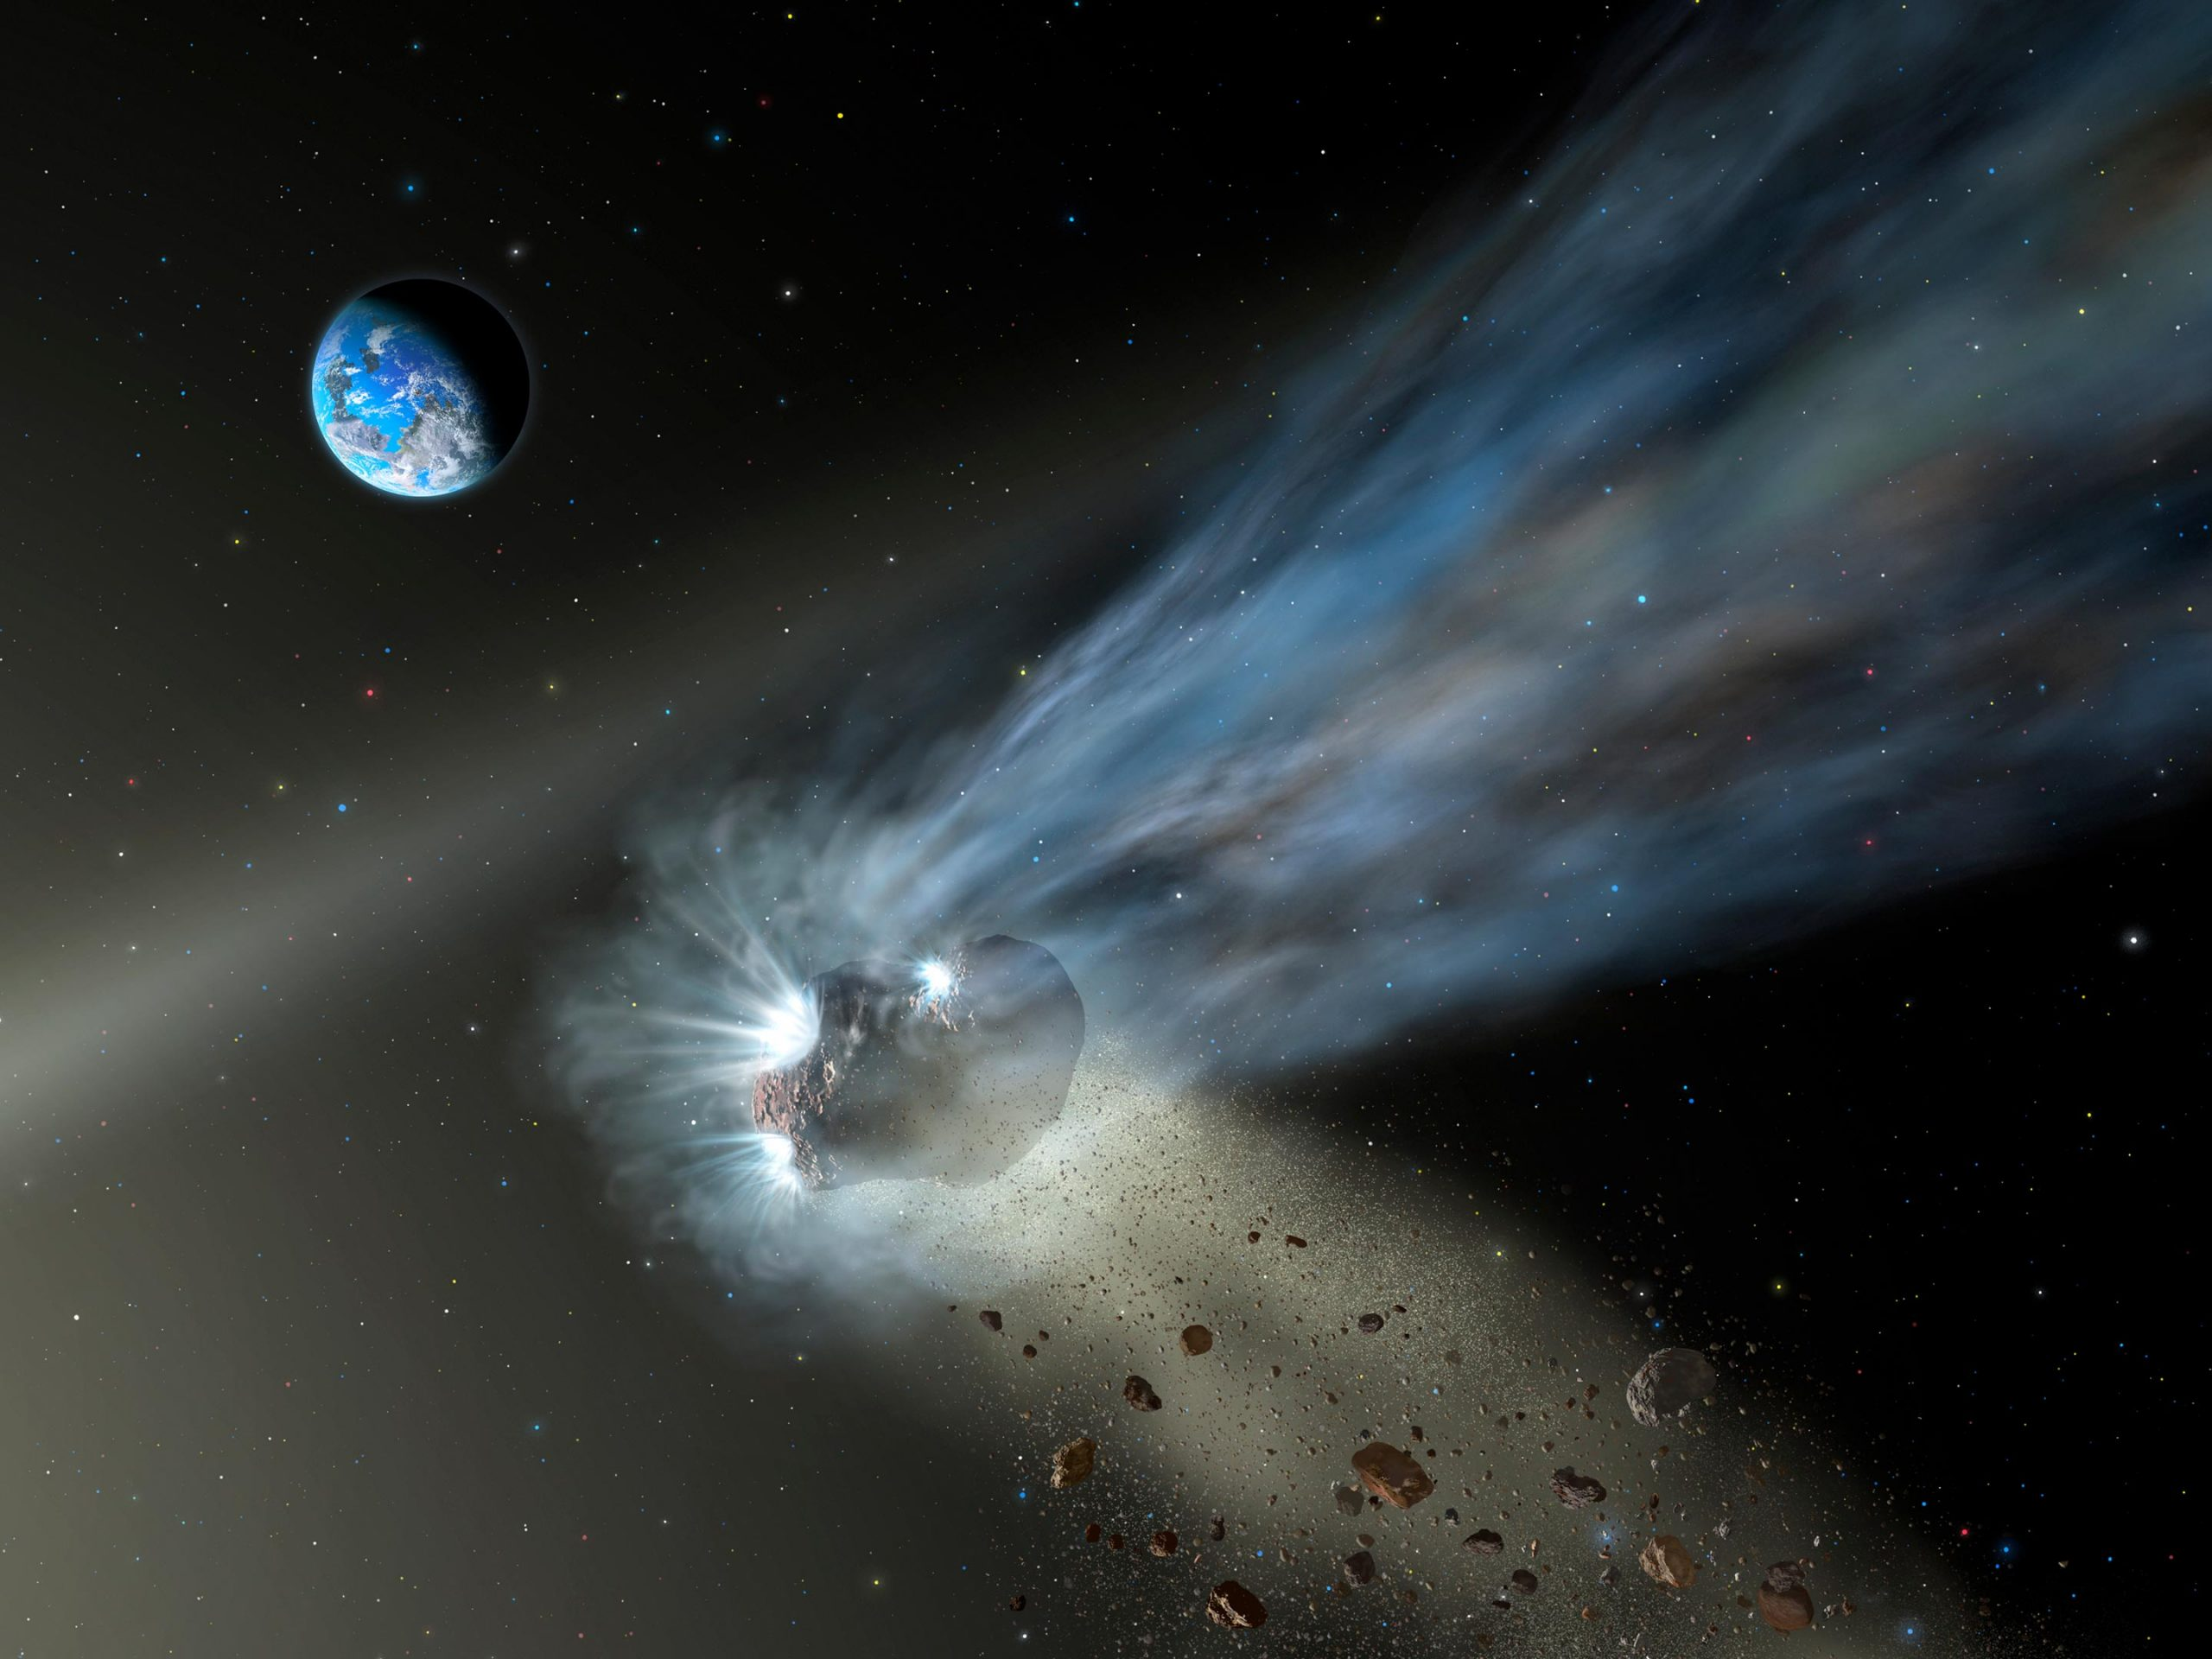 Comet Catalina's Glowing Tail Indicates Comets Delivered Carbon to Rocky Planets - SciTechDaily